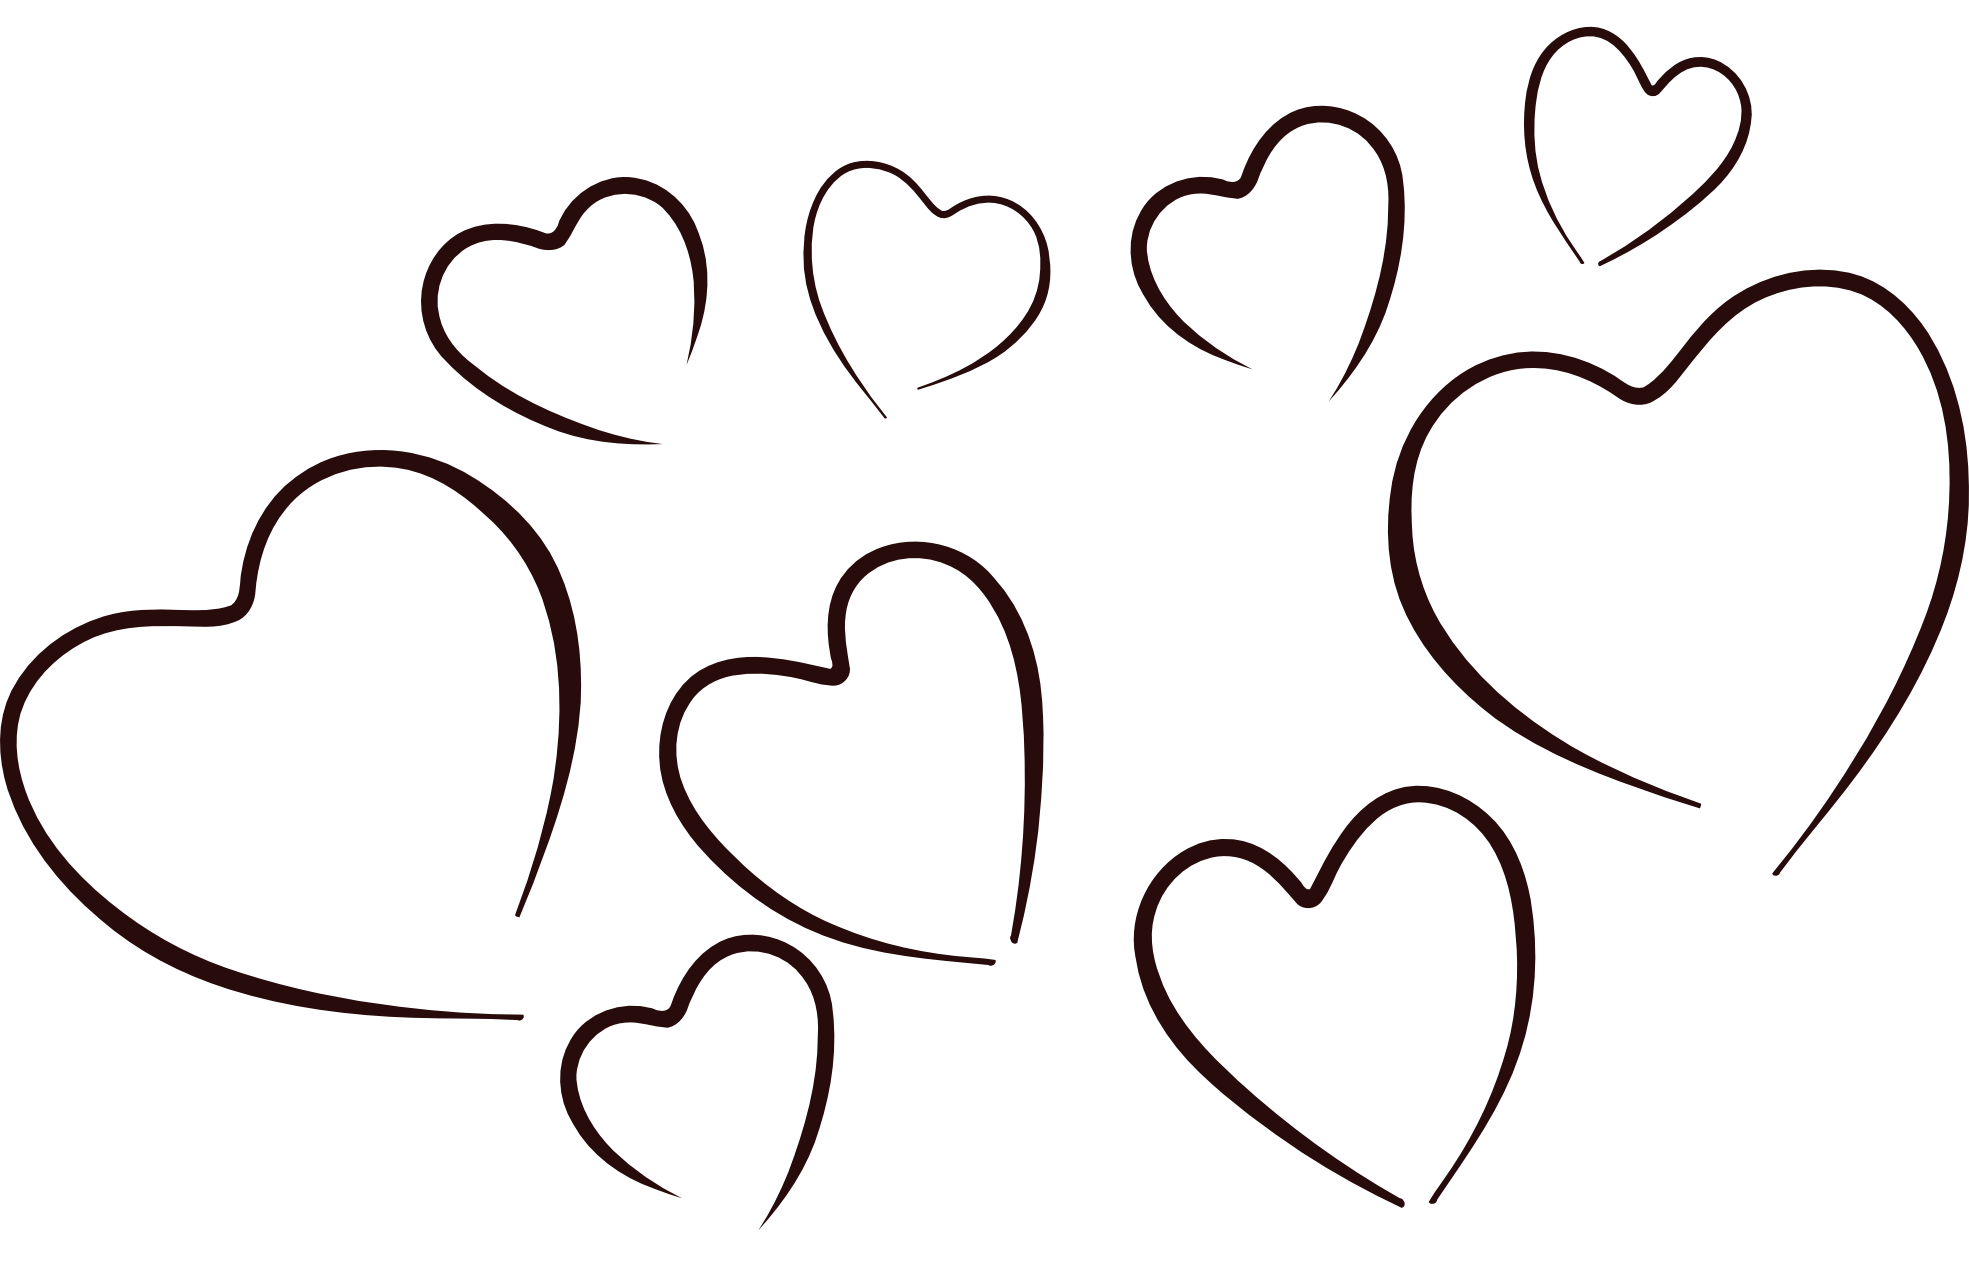 Heart clip art row. Hug clipart black and white